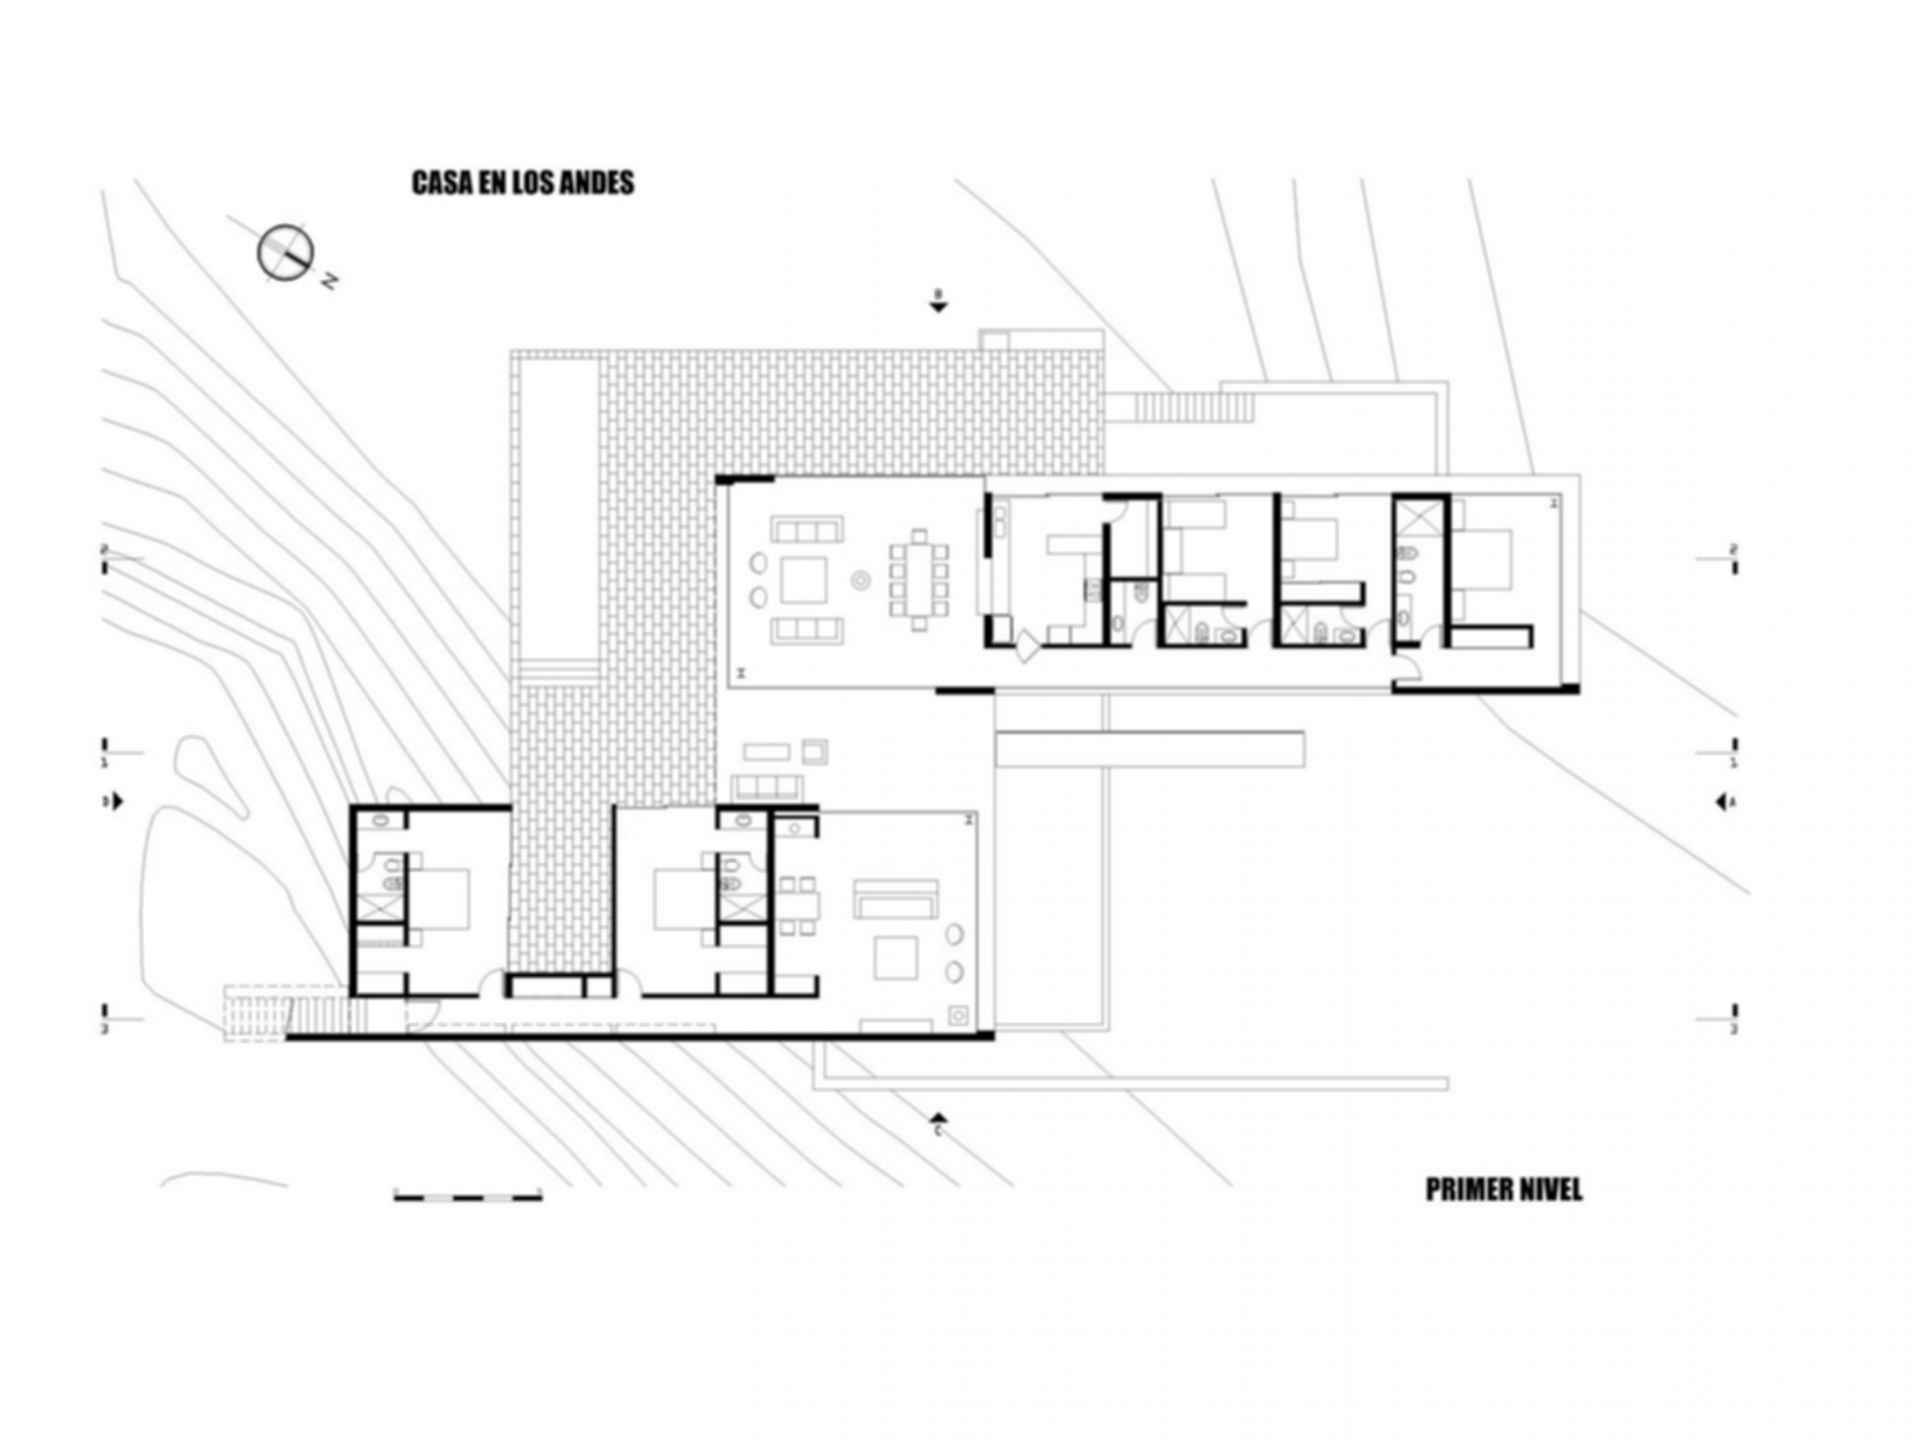 House on The Andes - floor plan